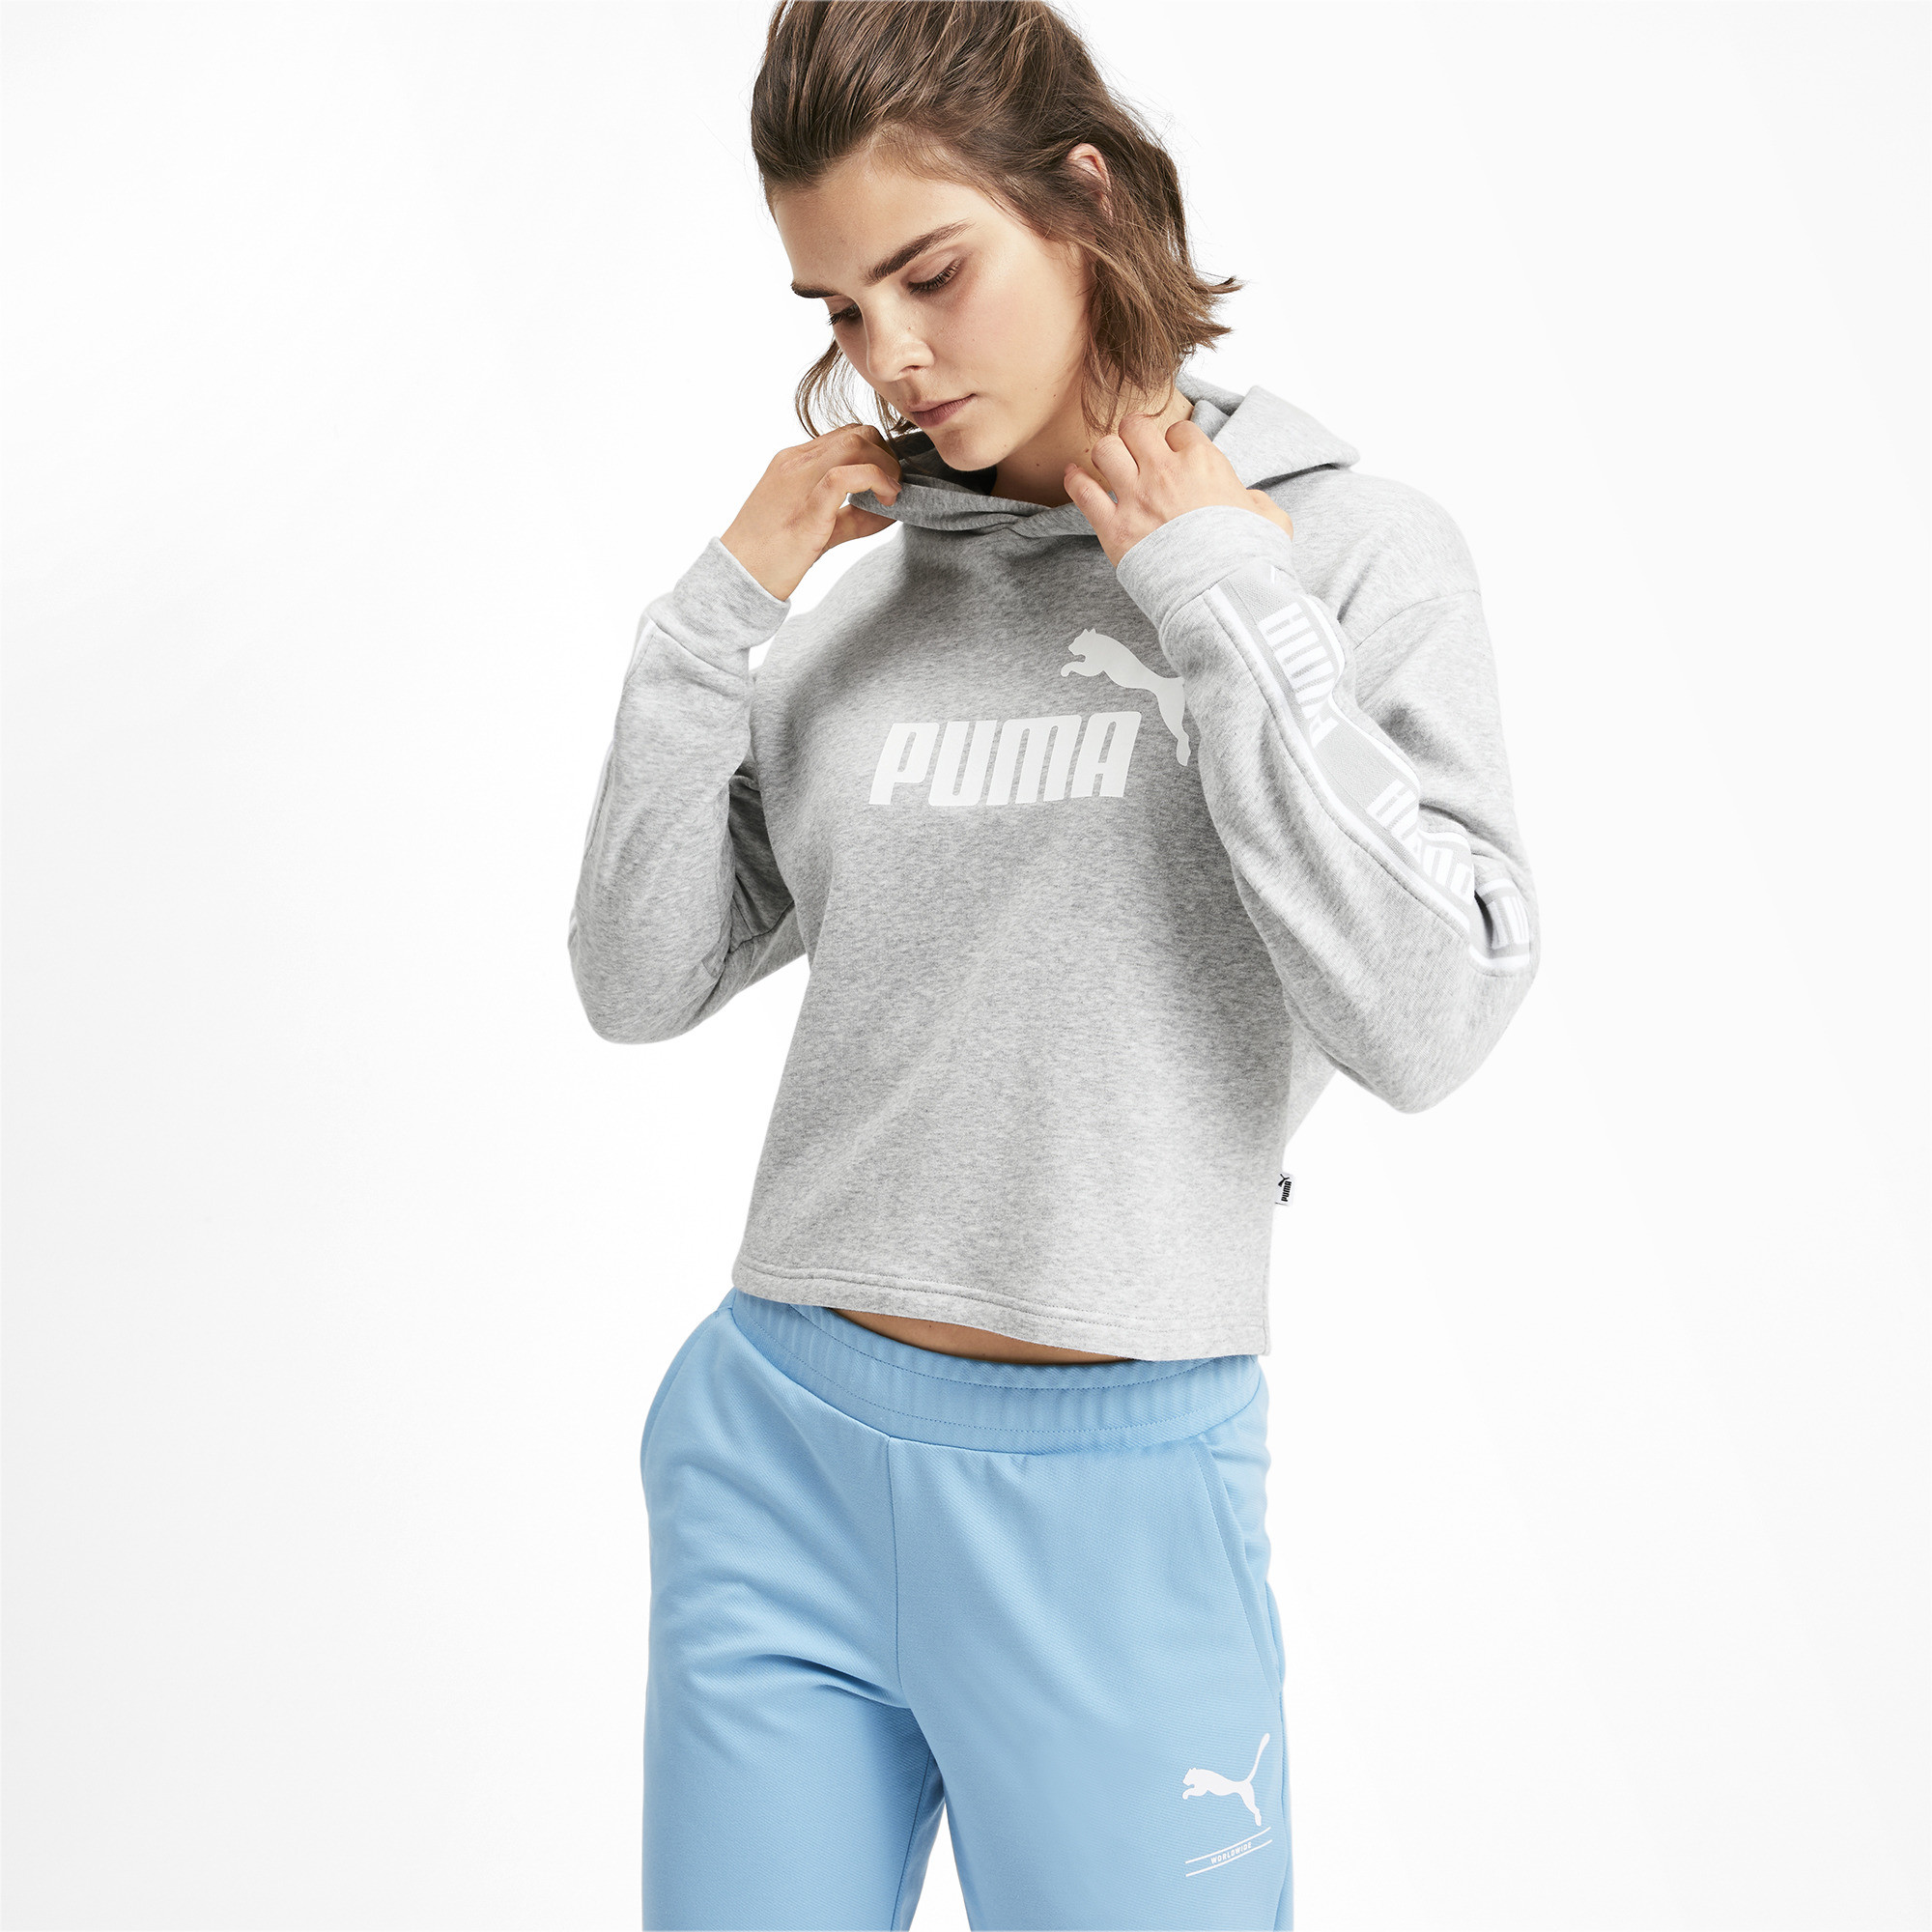 PUMA-Amplified-Women-039-s-Cropped-Hoodie-Women-Sweat-Basics thumbnail 14